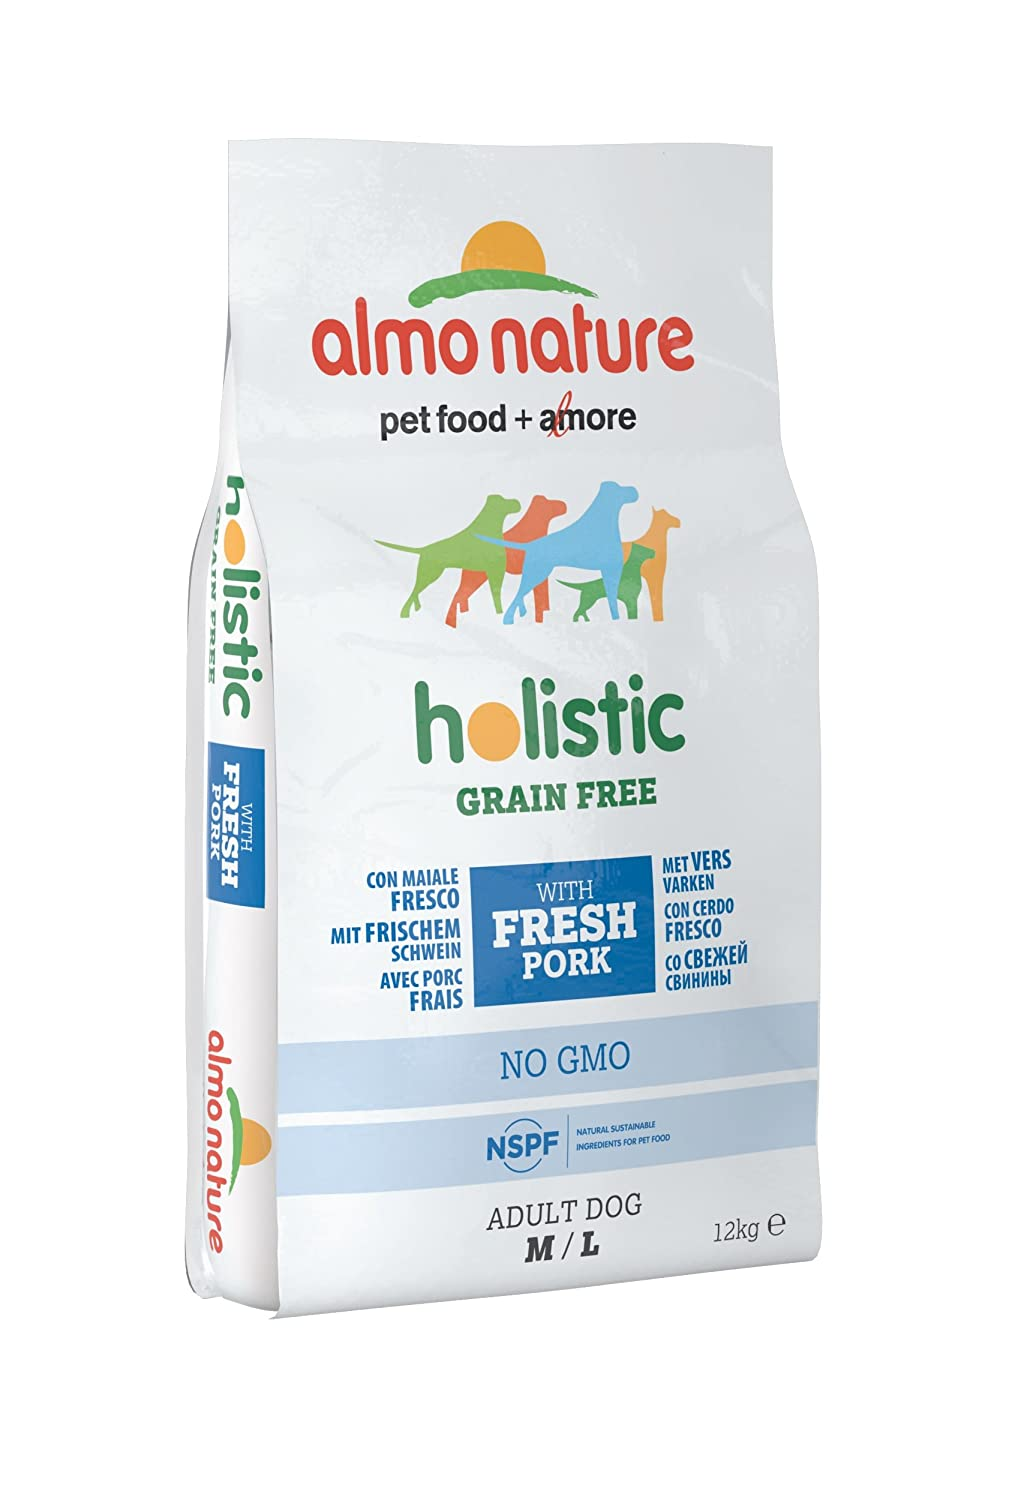 Almo Nature Holistic Grain Free Pork and Potatoes for Dogs, Medium Large, 12 kg